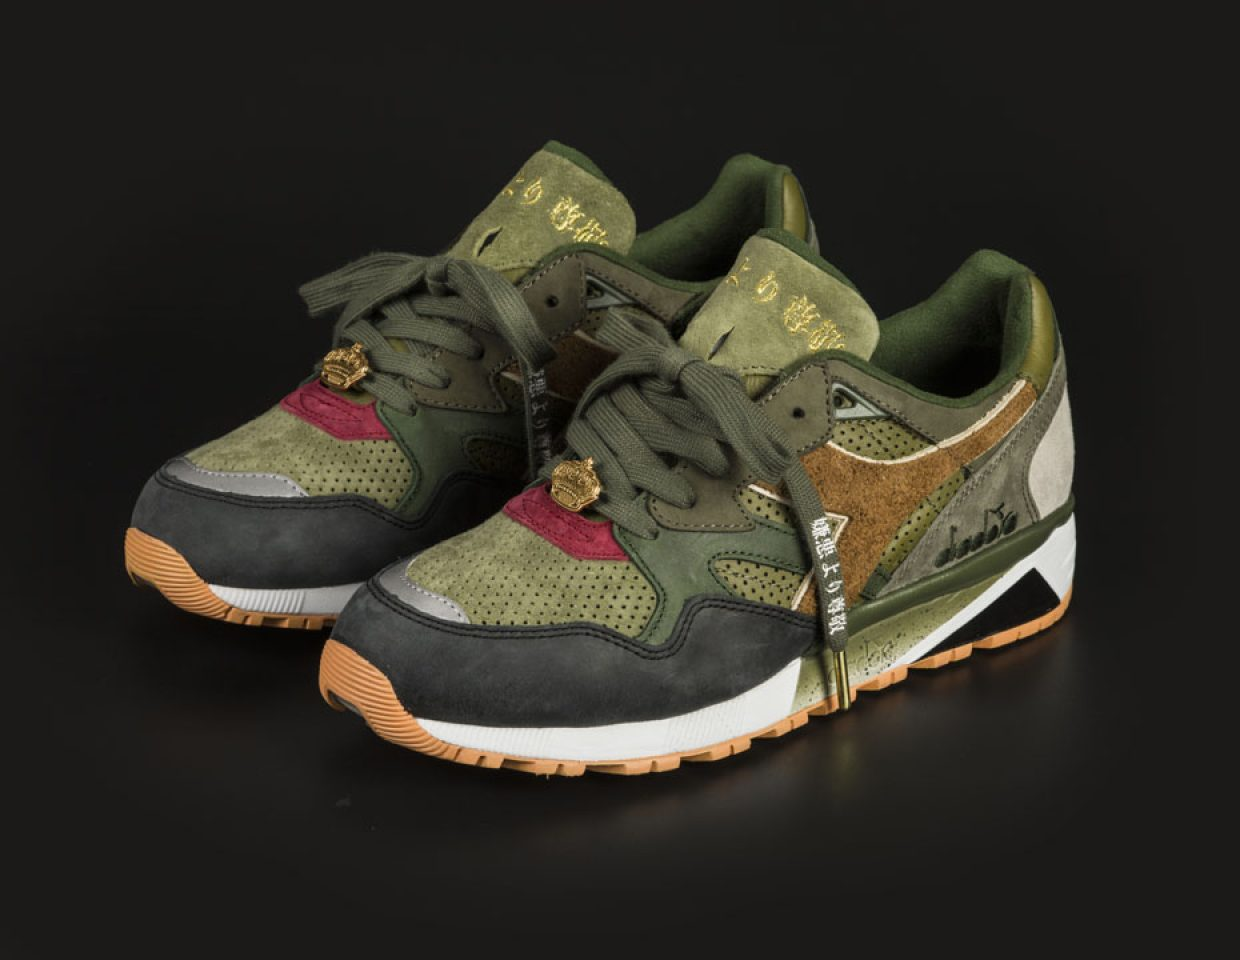 DIADORA N9002 24 KILATES MITA MIGHTY CROWN